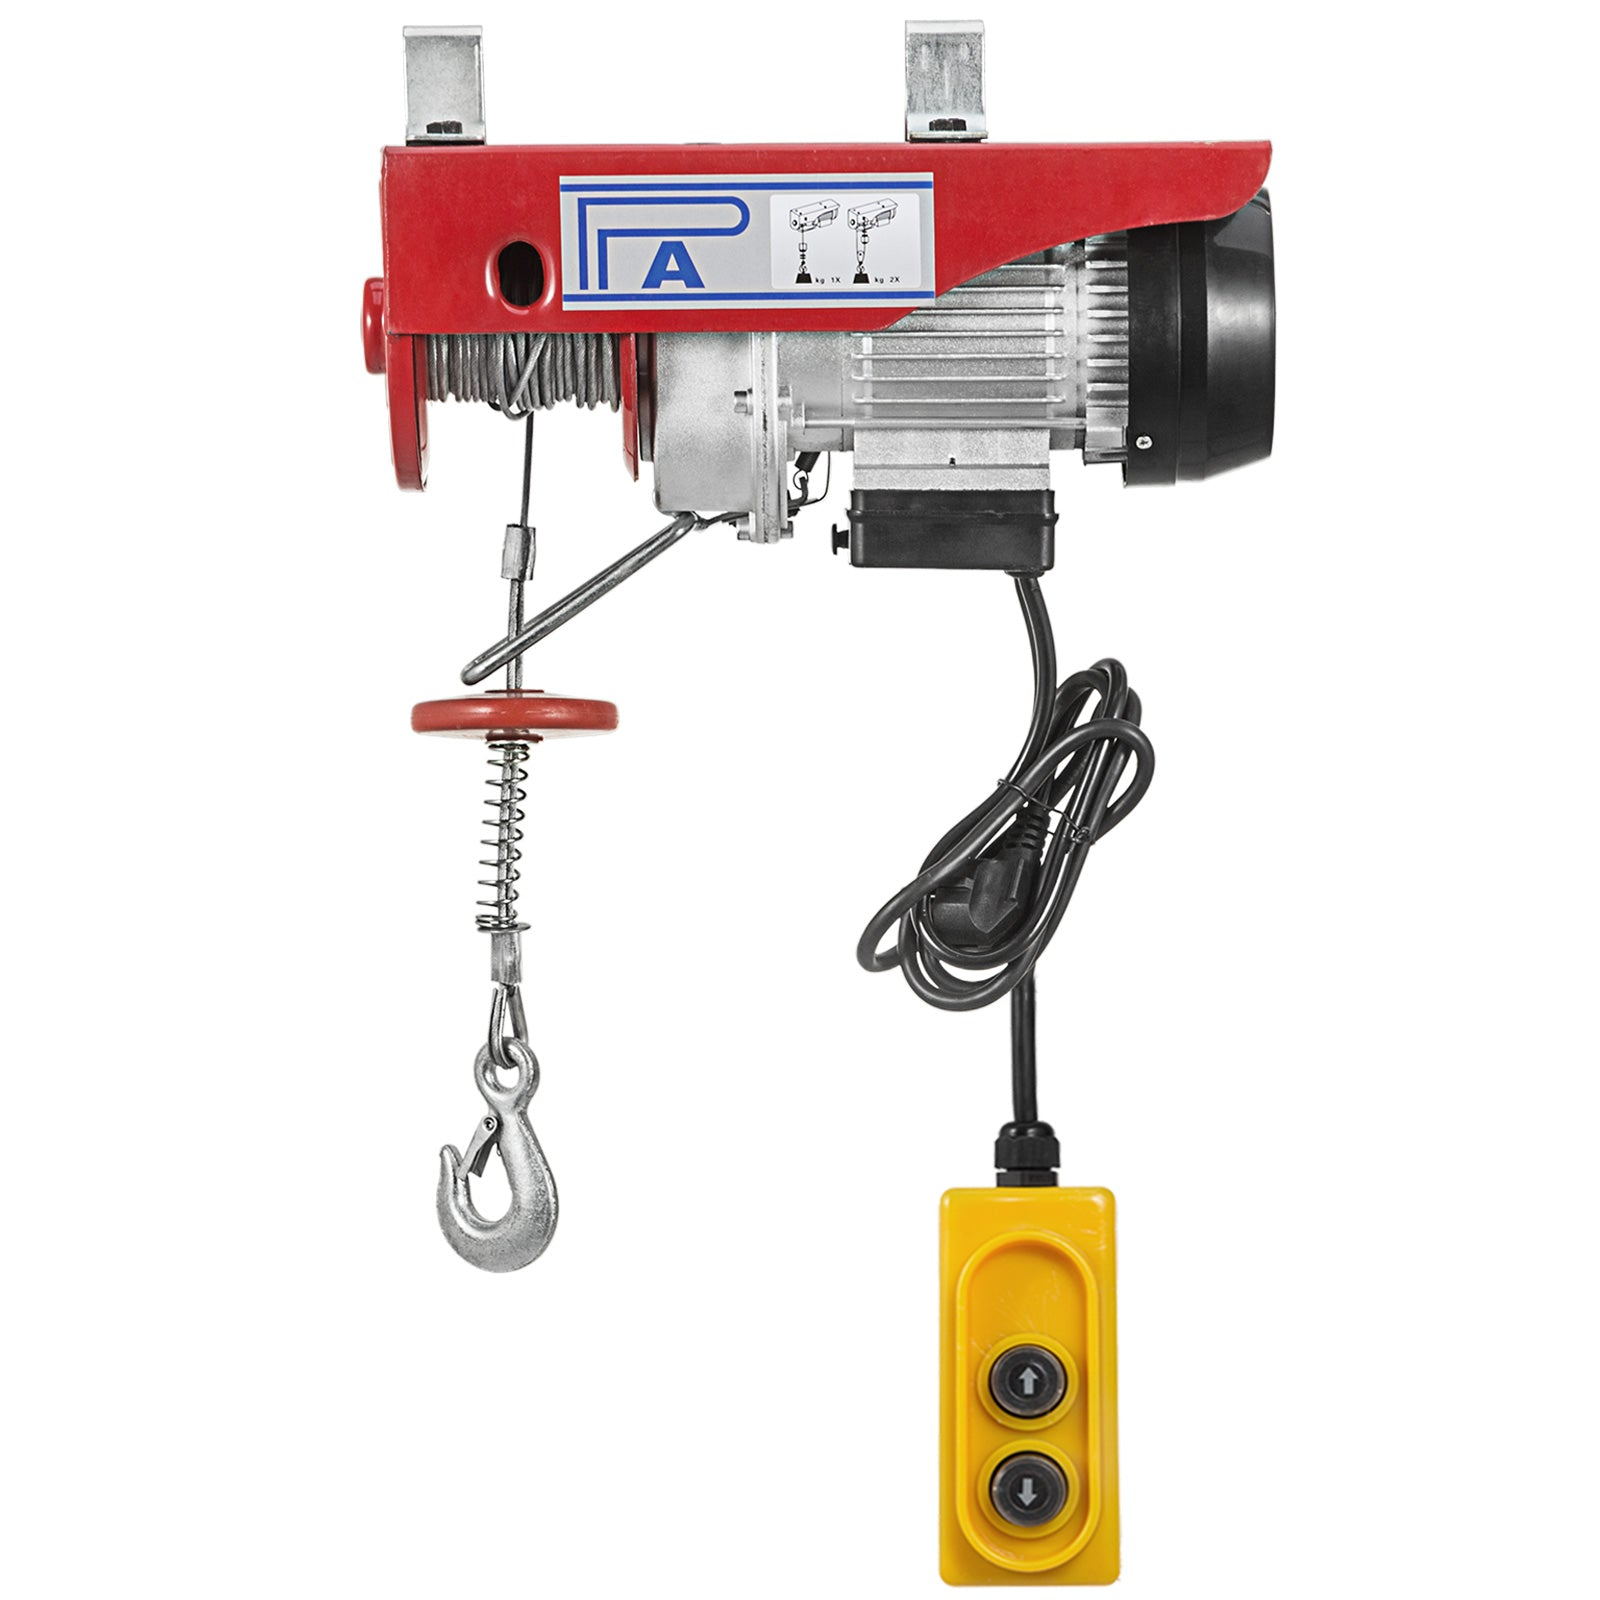 Scaffold Winch Electric Hoist Lifting 300kg Durable Engine Heavy Duty